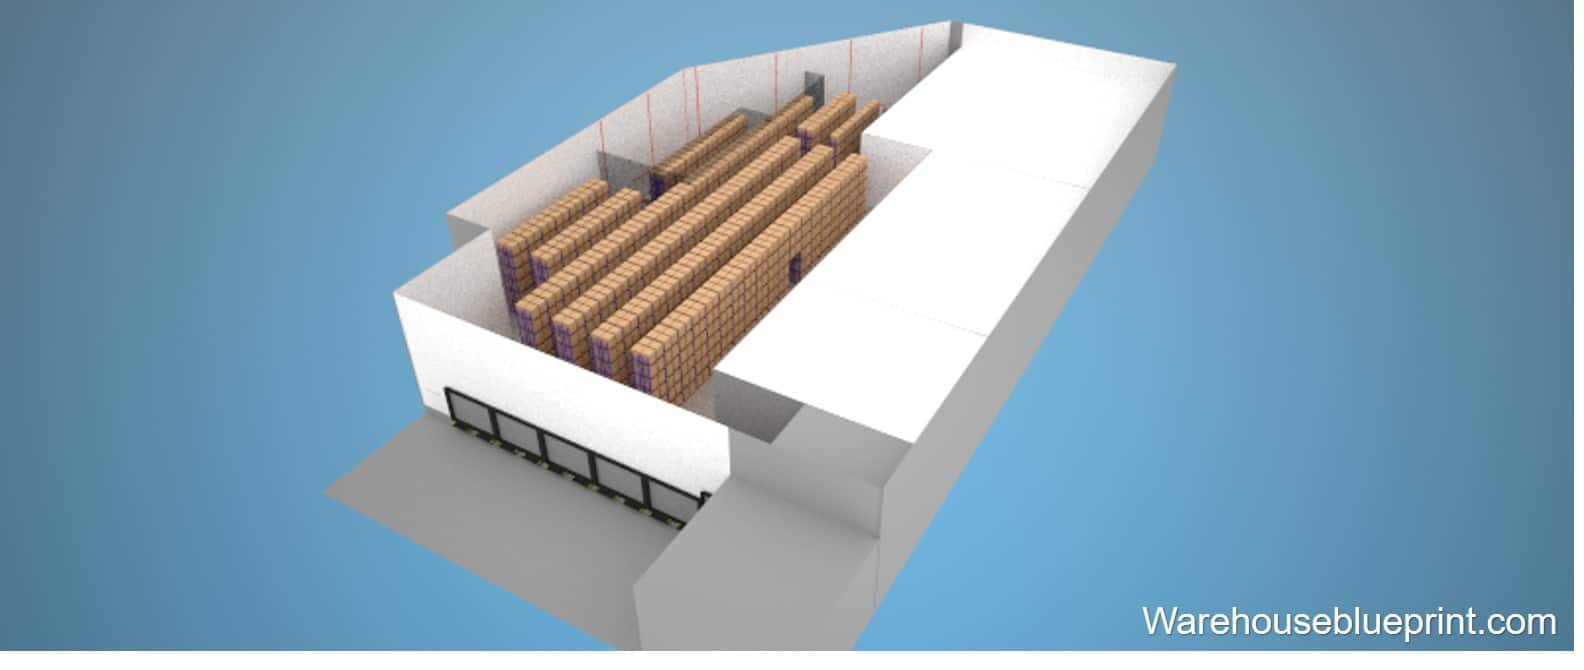 Warehouse Layout 2 - rendered